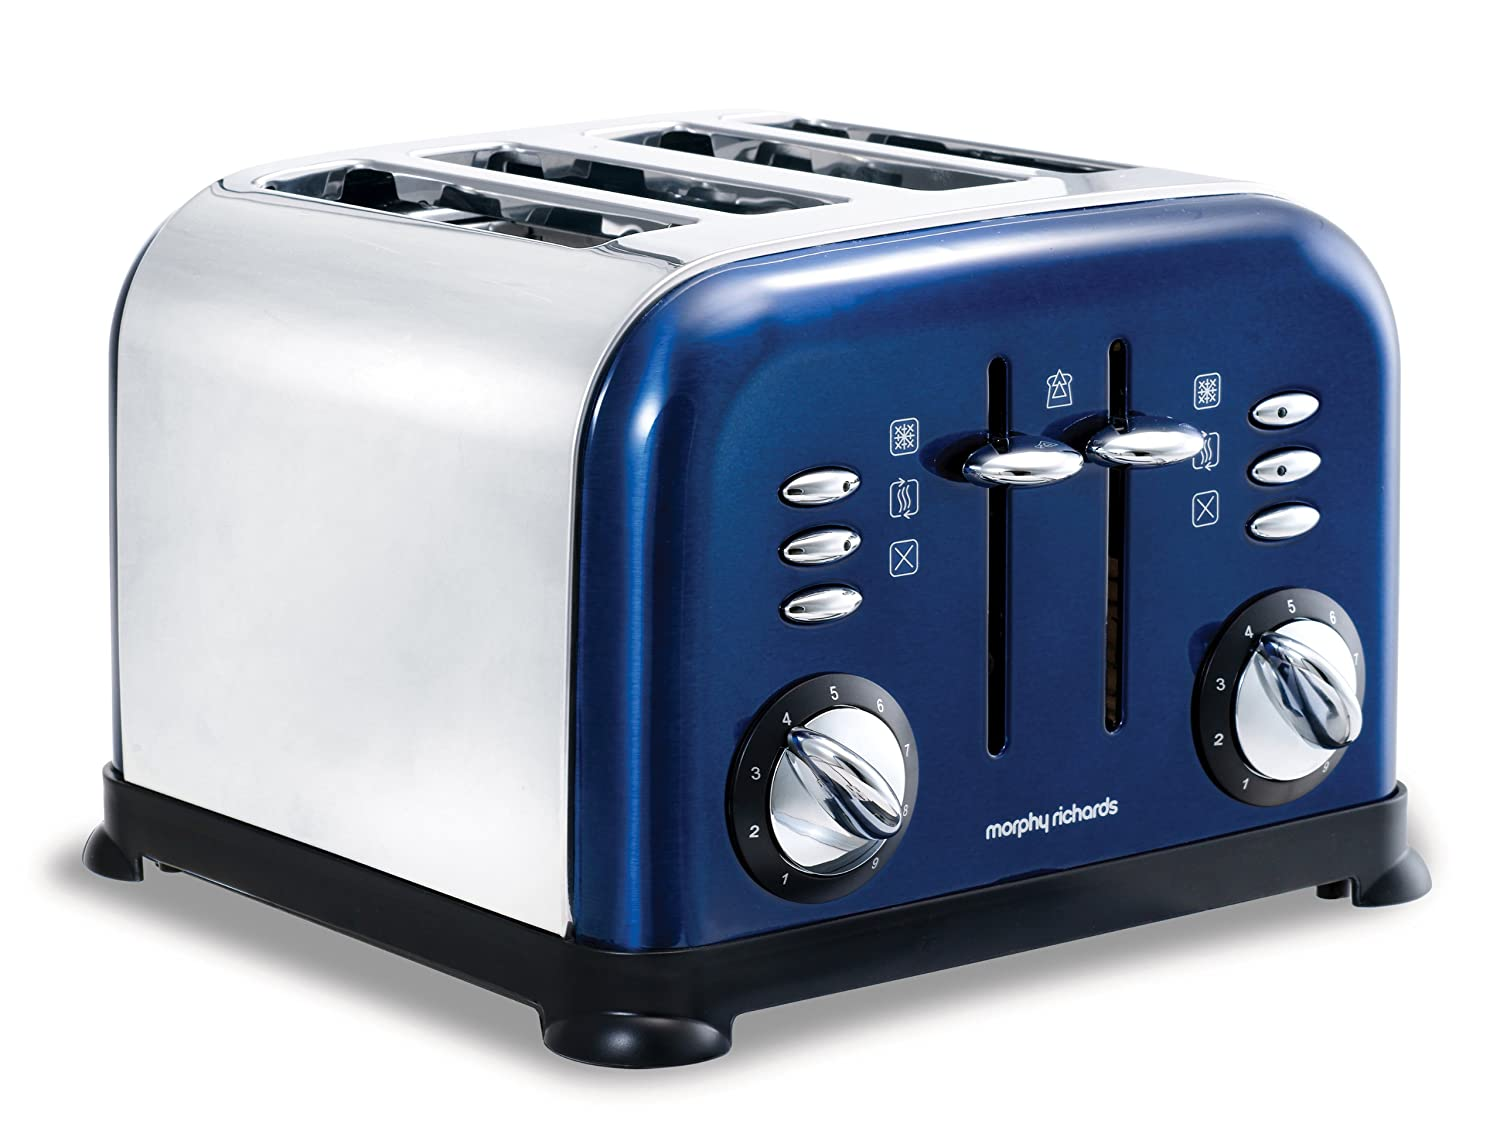 5l accents range only electricals co uk small kitchen appliances - Morphy Richards Accents 44730 4 Slice Toaster Blue Amazon Co Uk Kitchen Home